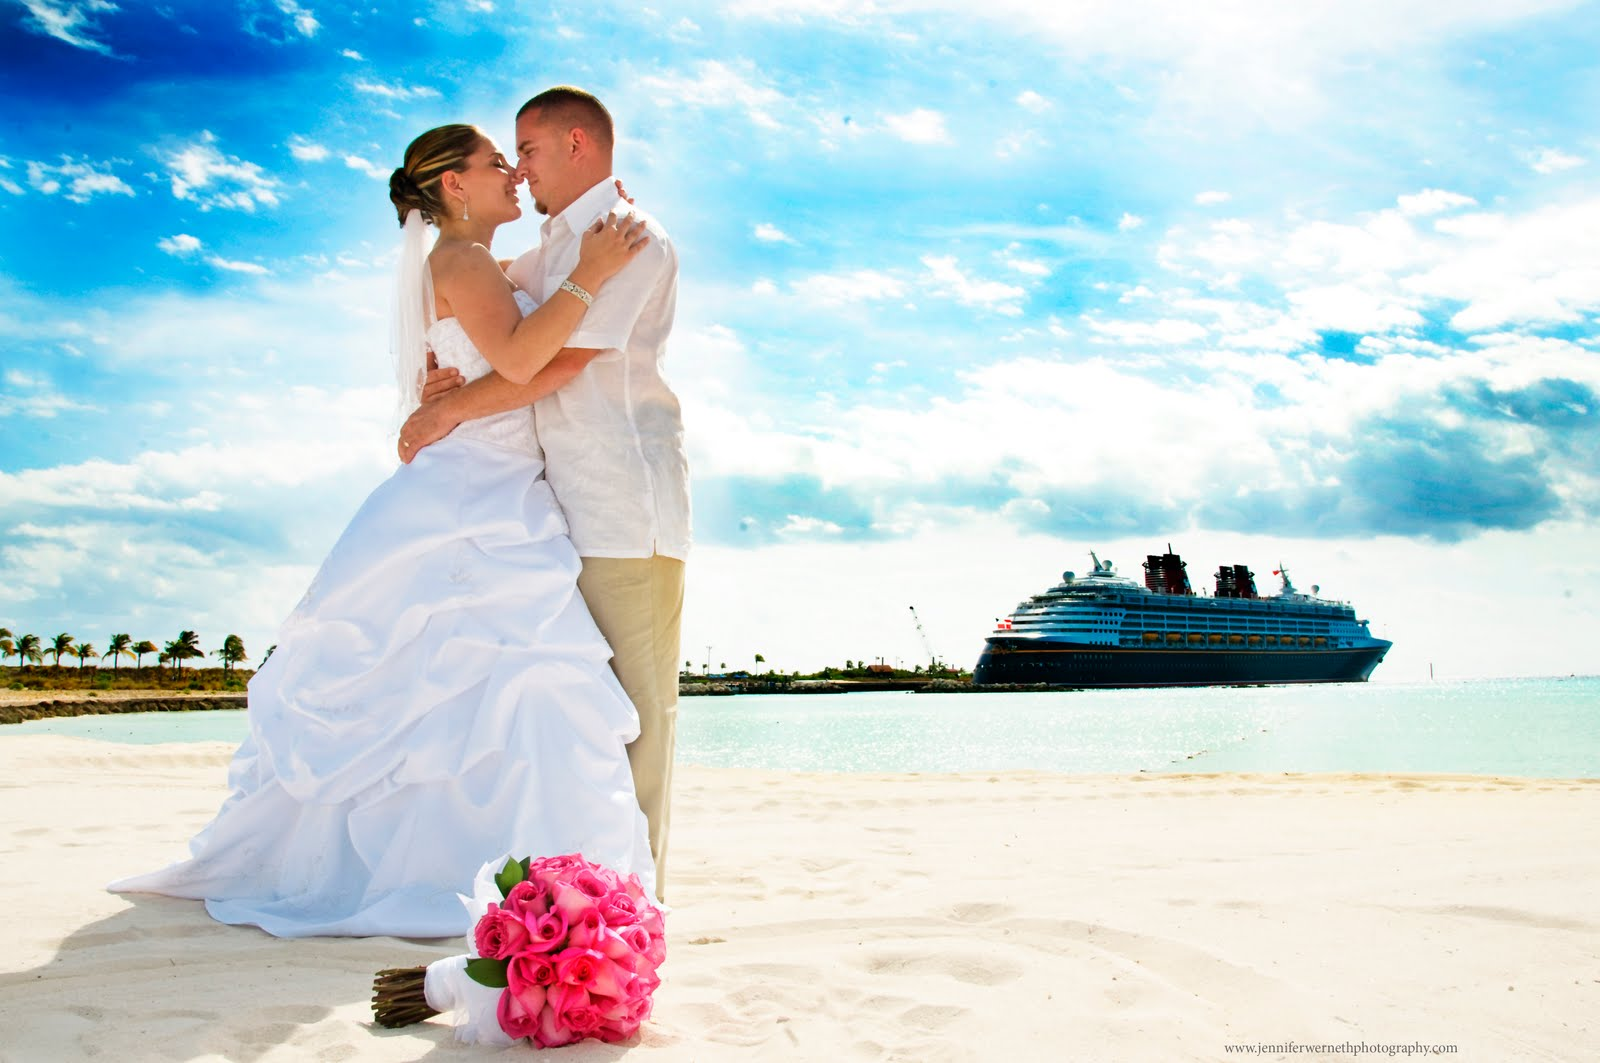 Wonderful Cruise Wedding